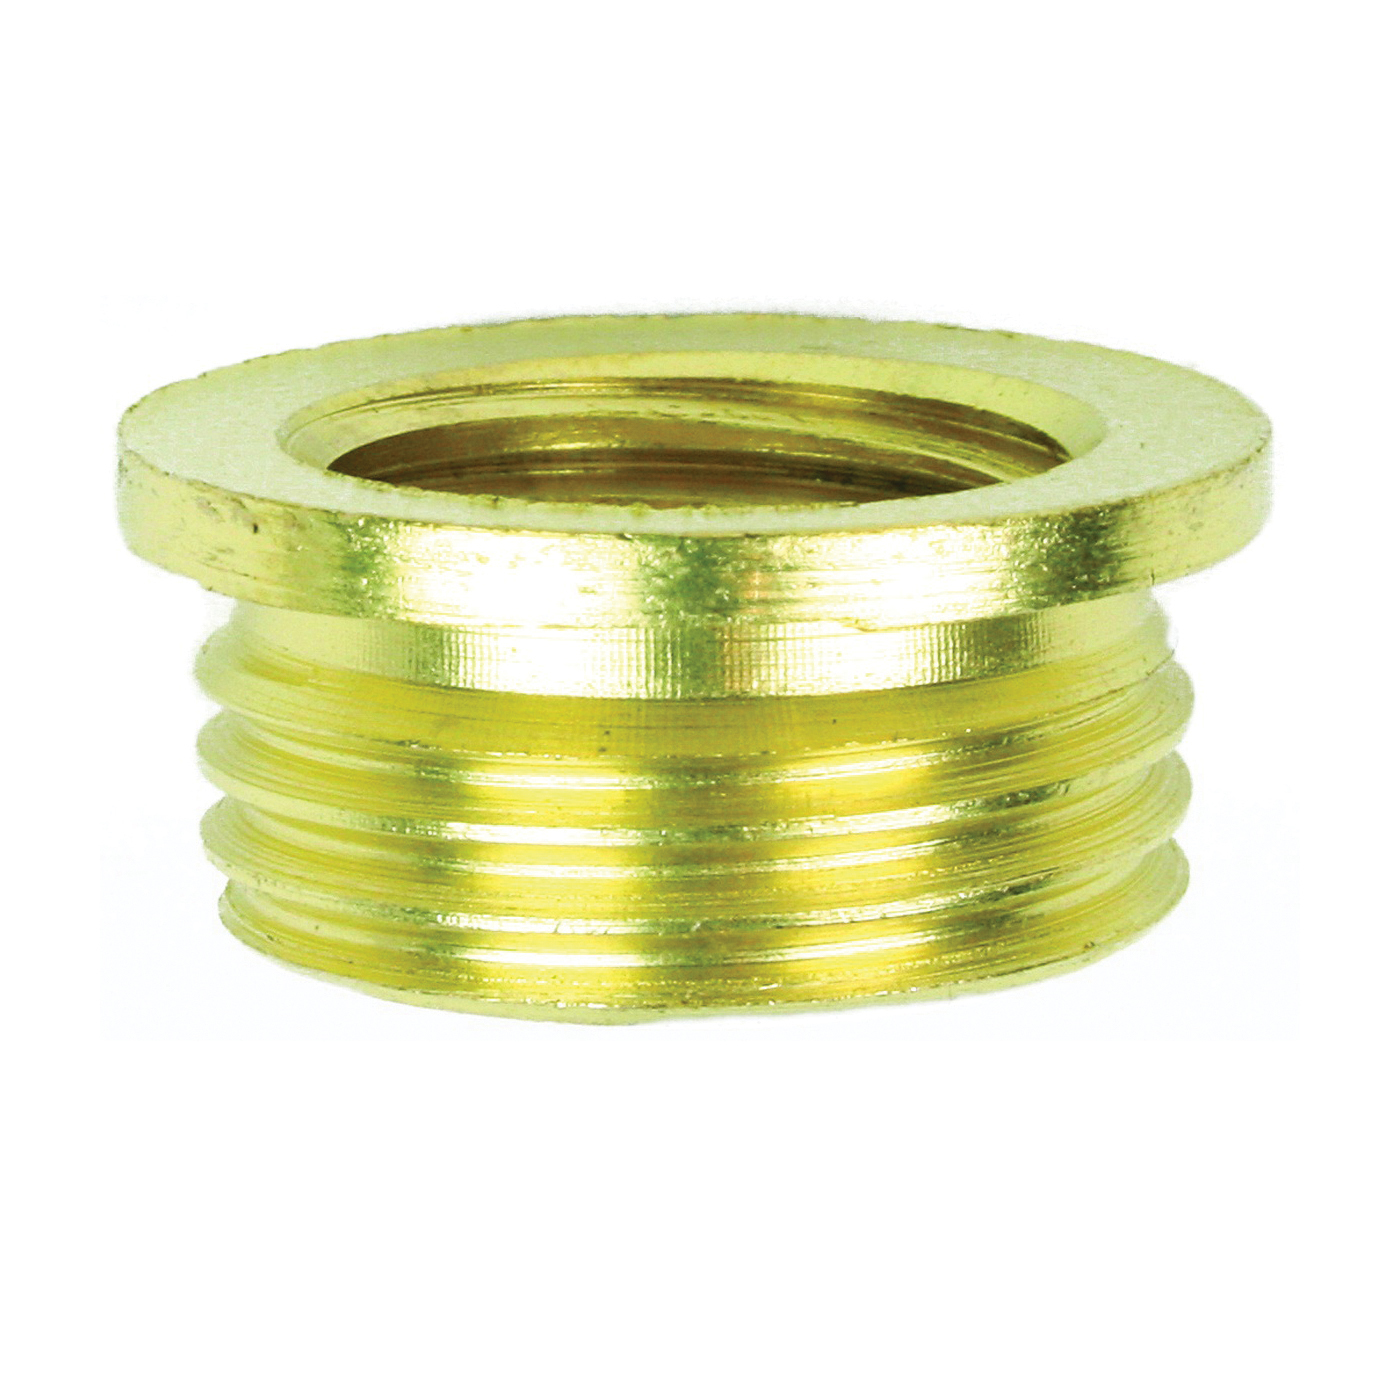 Picture of Jandorf 60147 Lamp Reducer, Brass